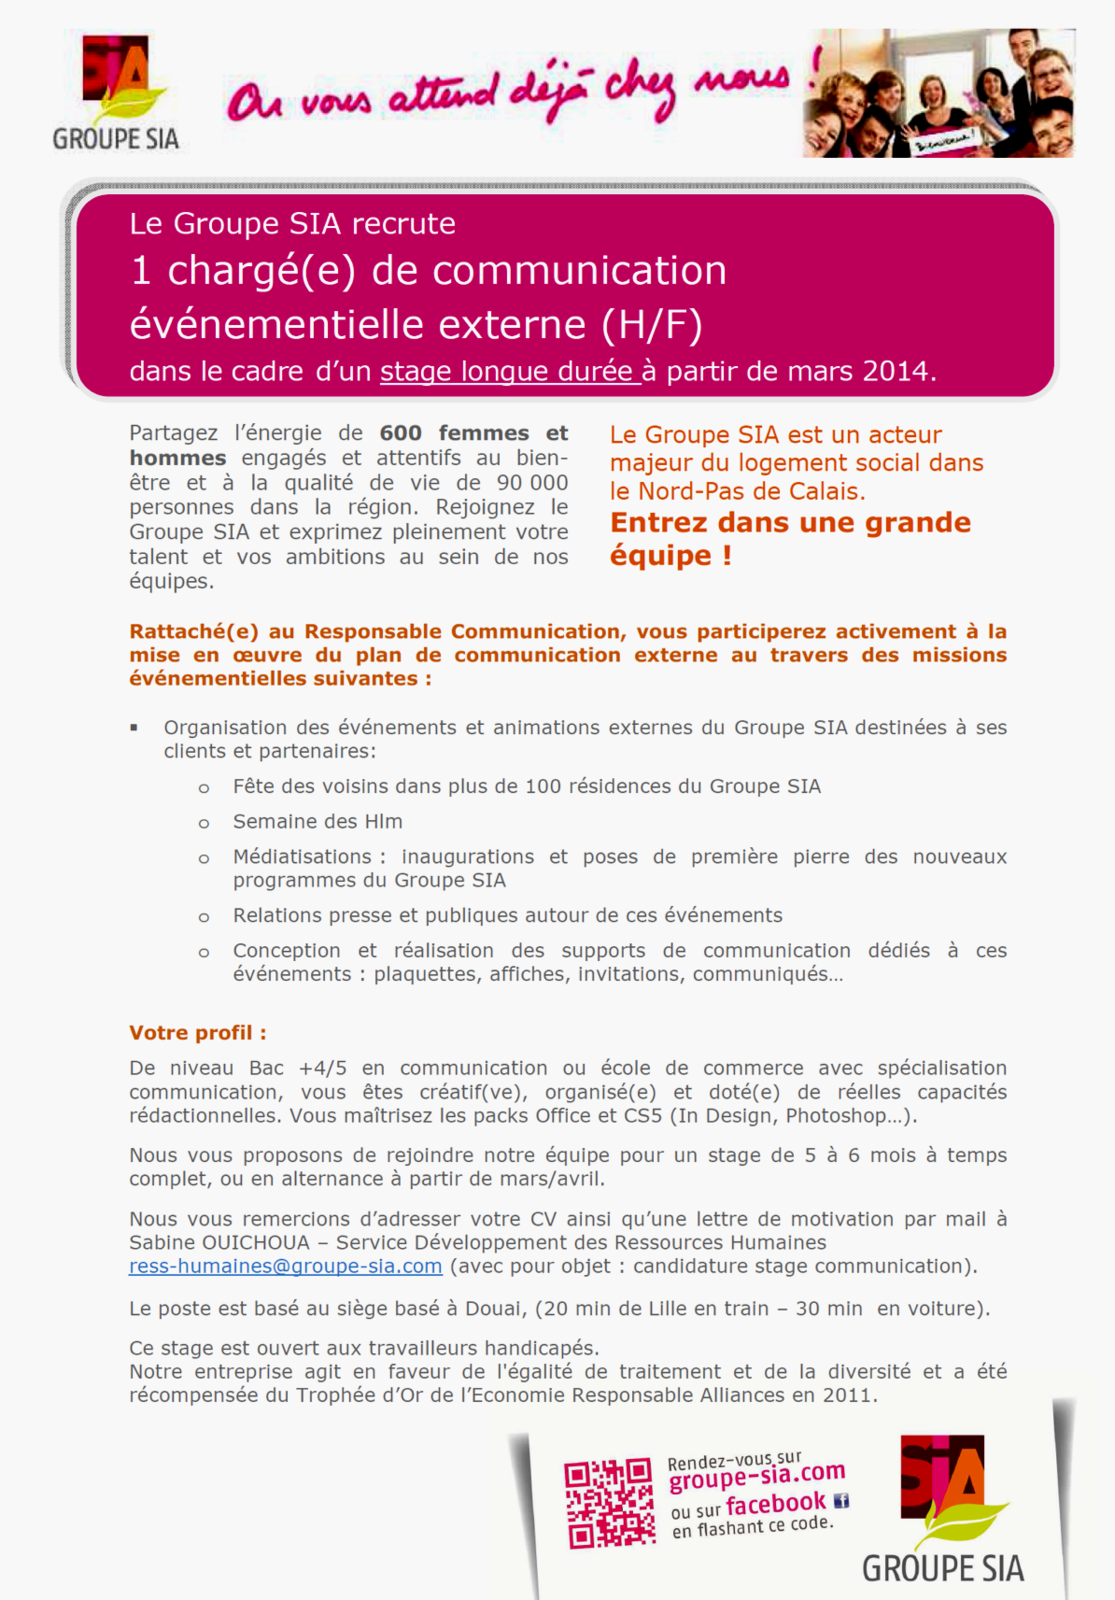 OFFRE DE STAGE - CHARGE(E) DE COMMUNICATION EVENEMENTIELLE EXTERNE